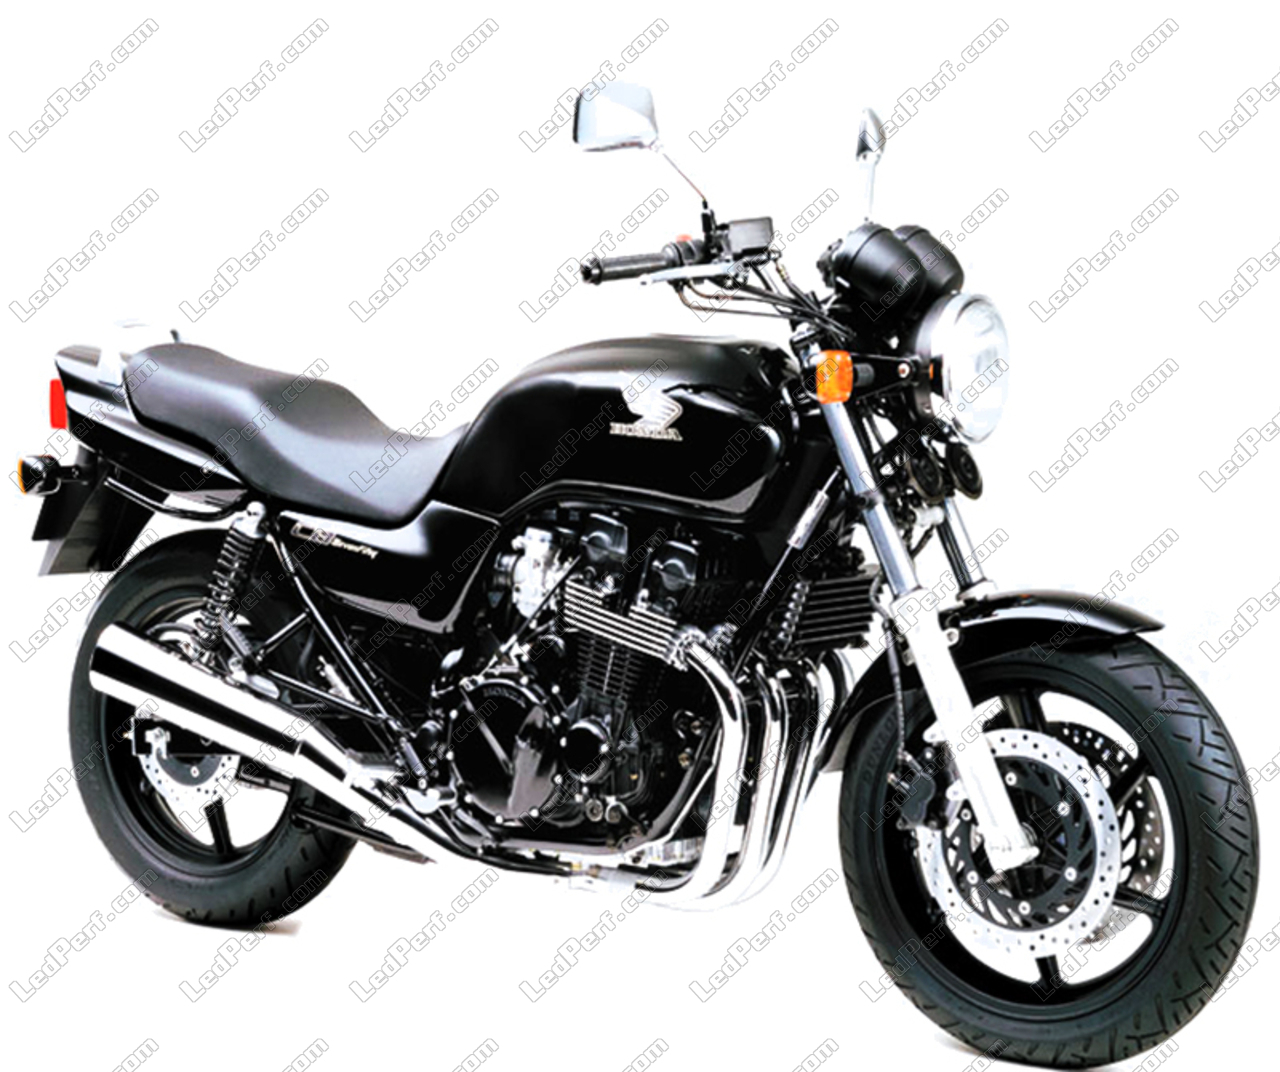 round led headlight for honda cb 750 seven fifty 5 year. Black Bedroom Furniture Sets. Home Design Ideas